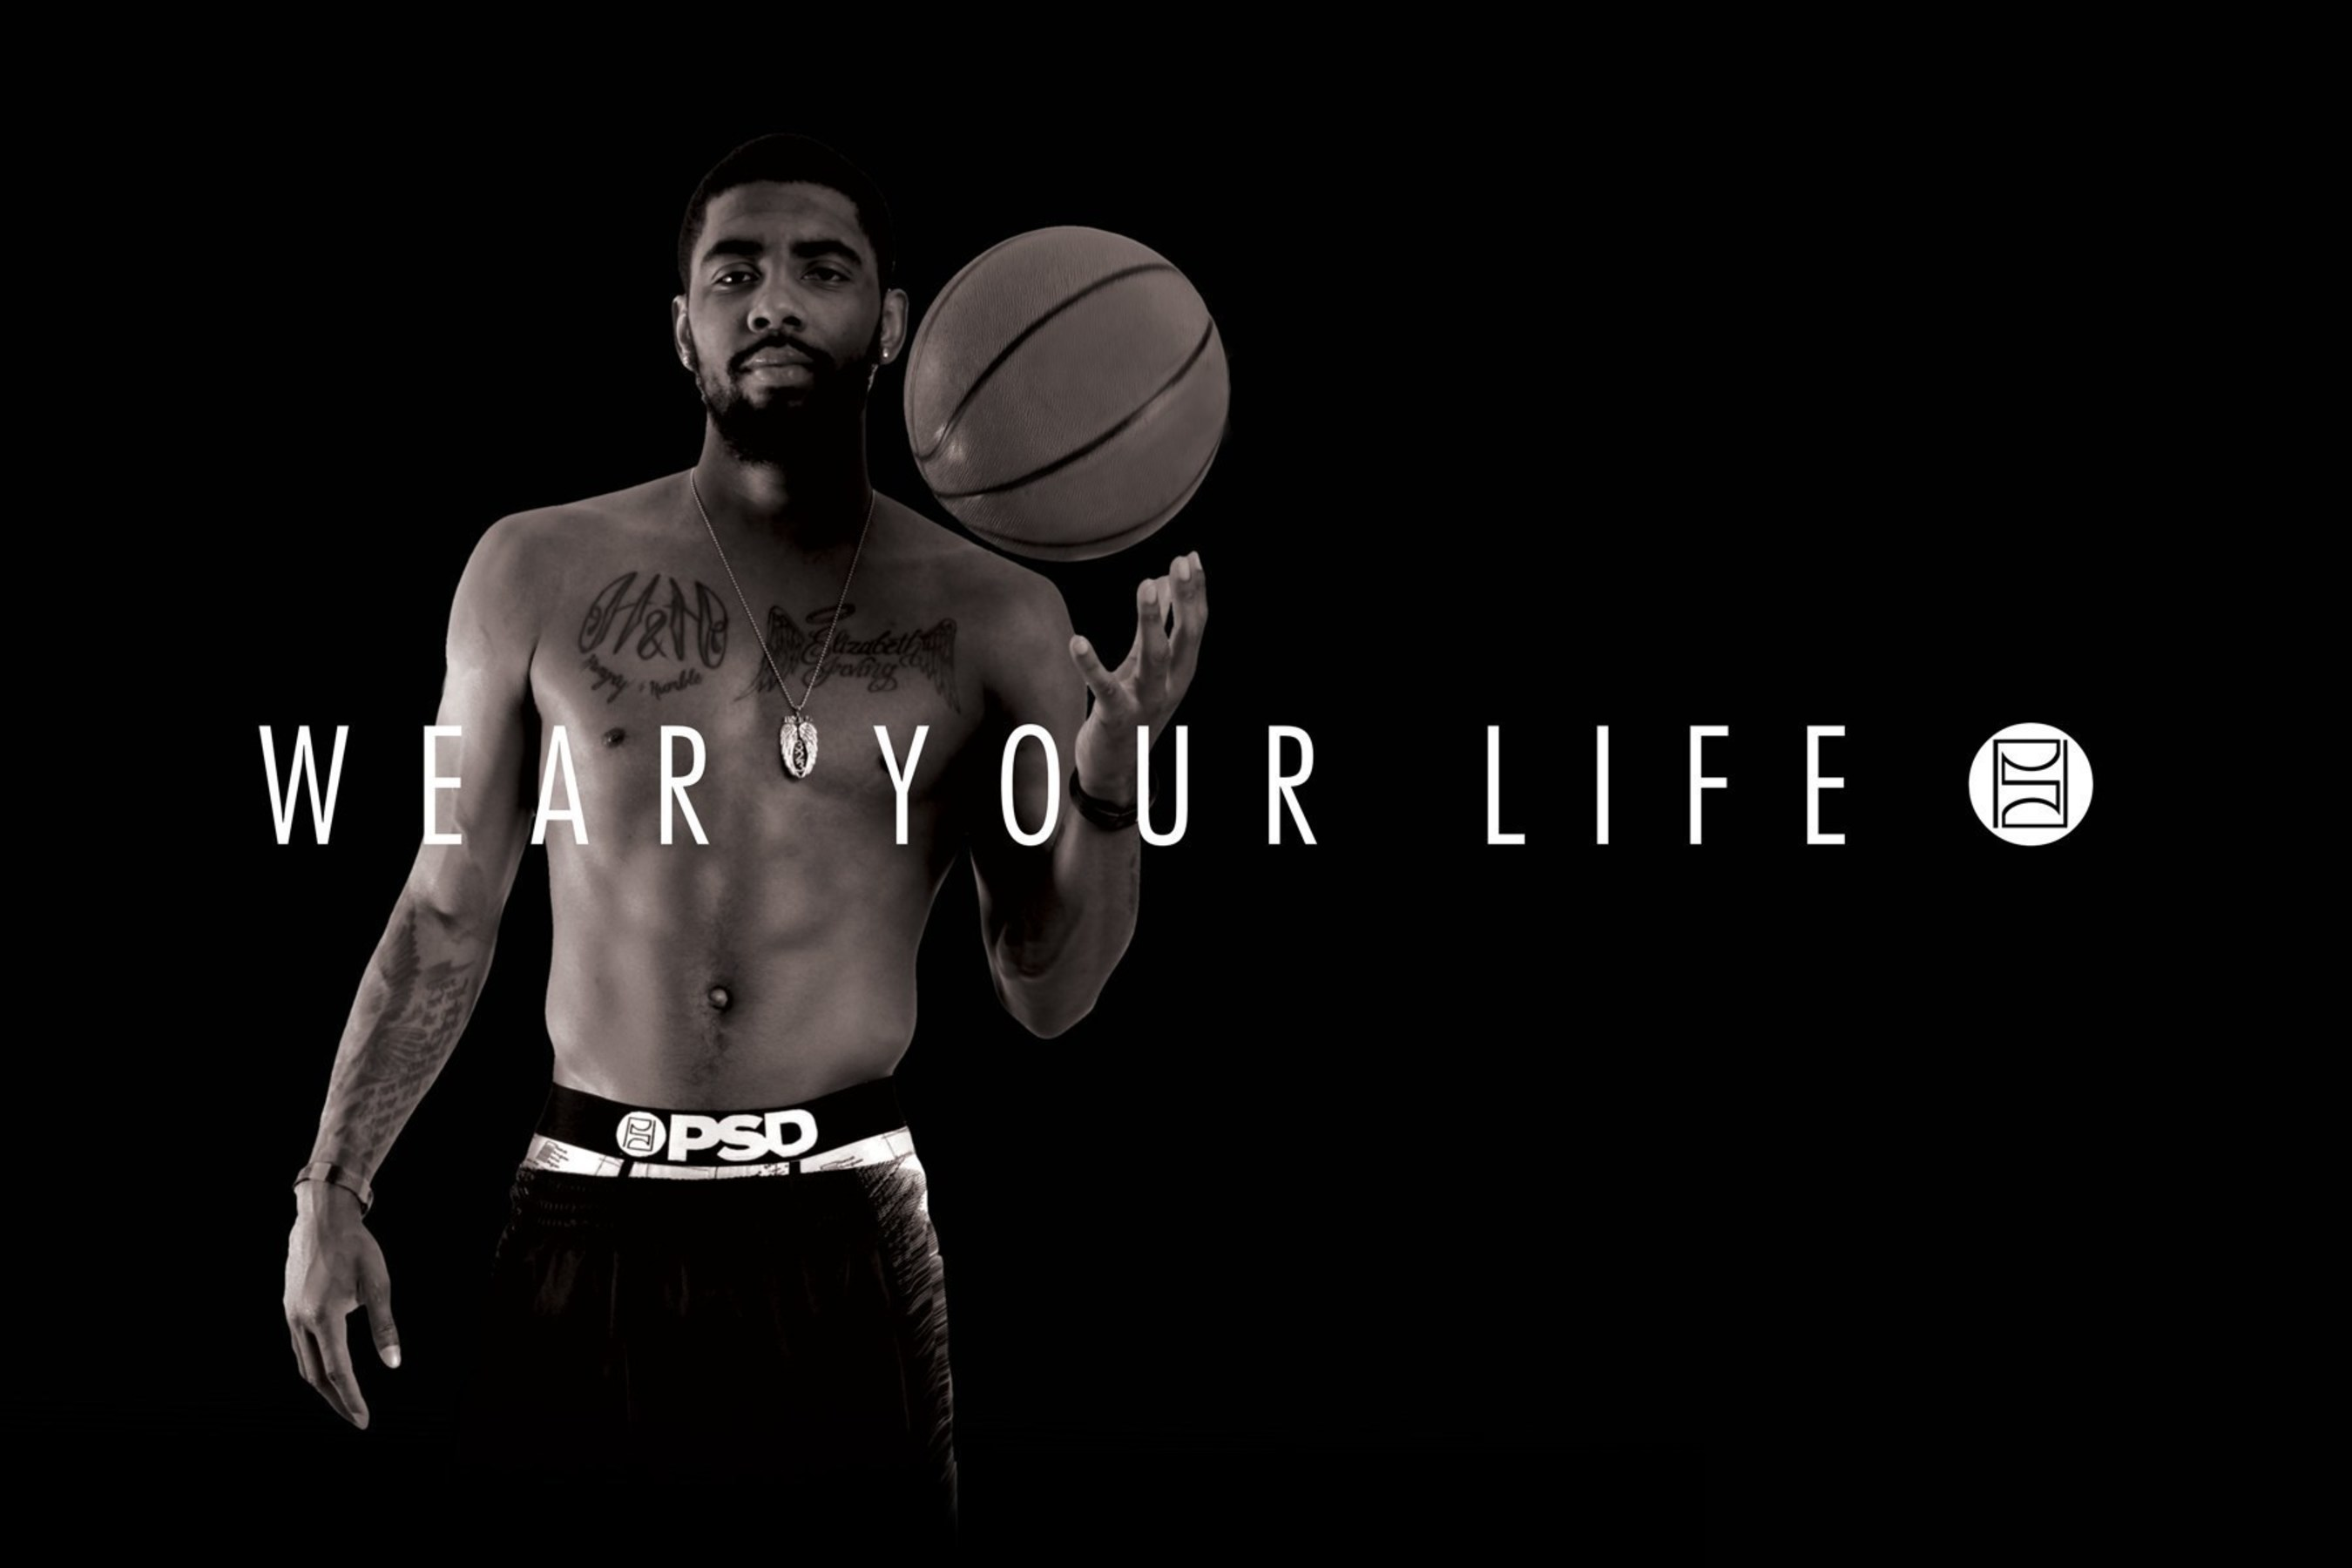 Kyrie Irving, wearing one of the designs from his Holiday signature line from PSD Underwear